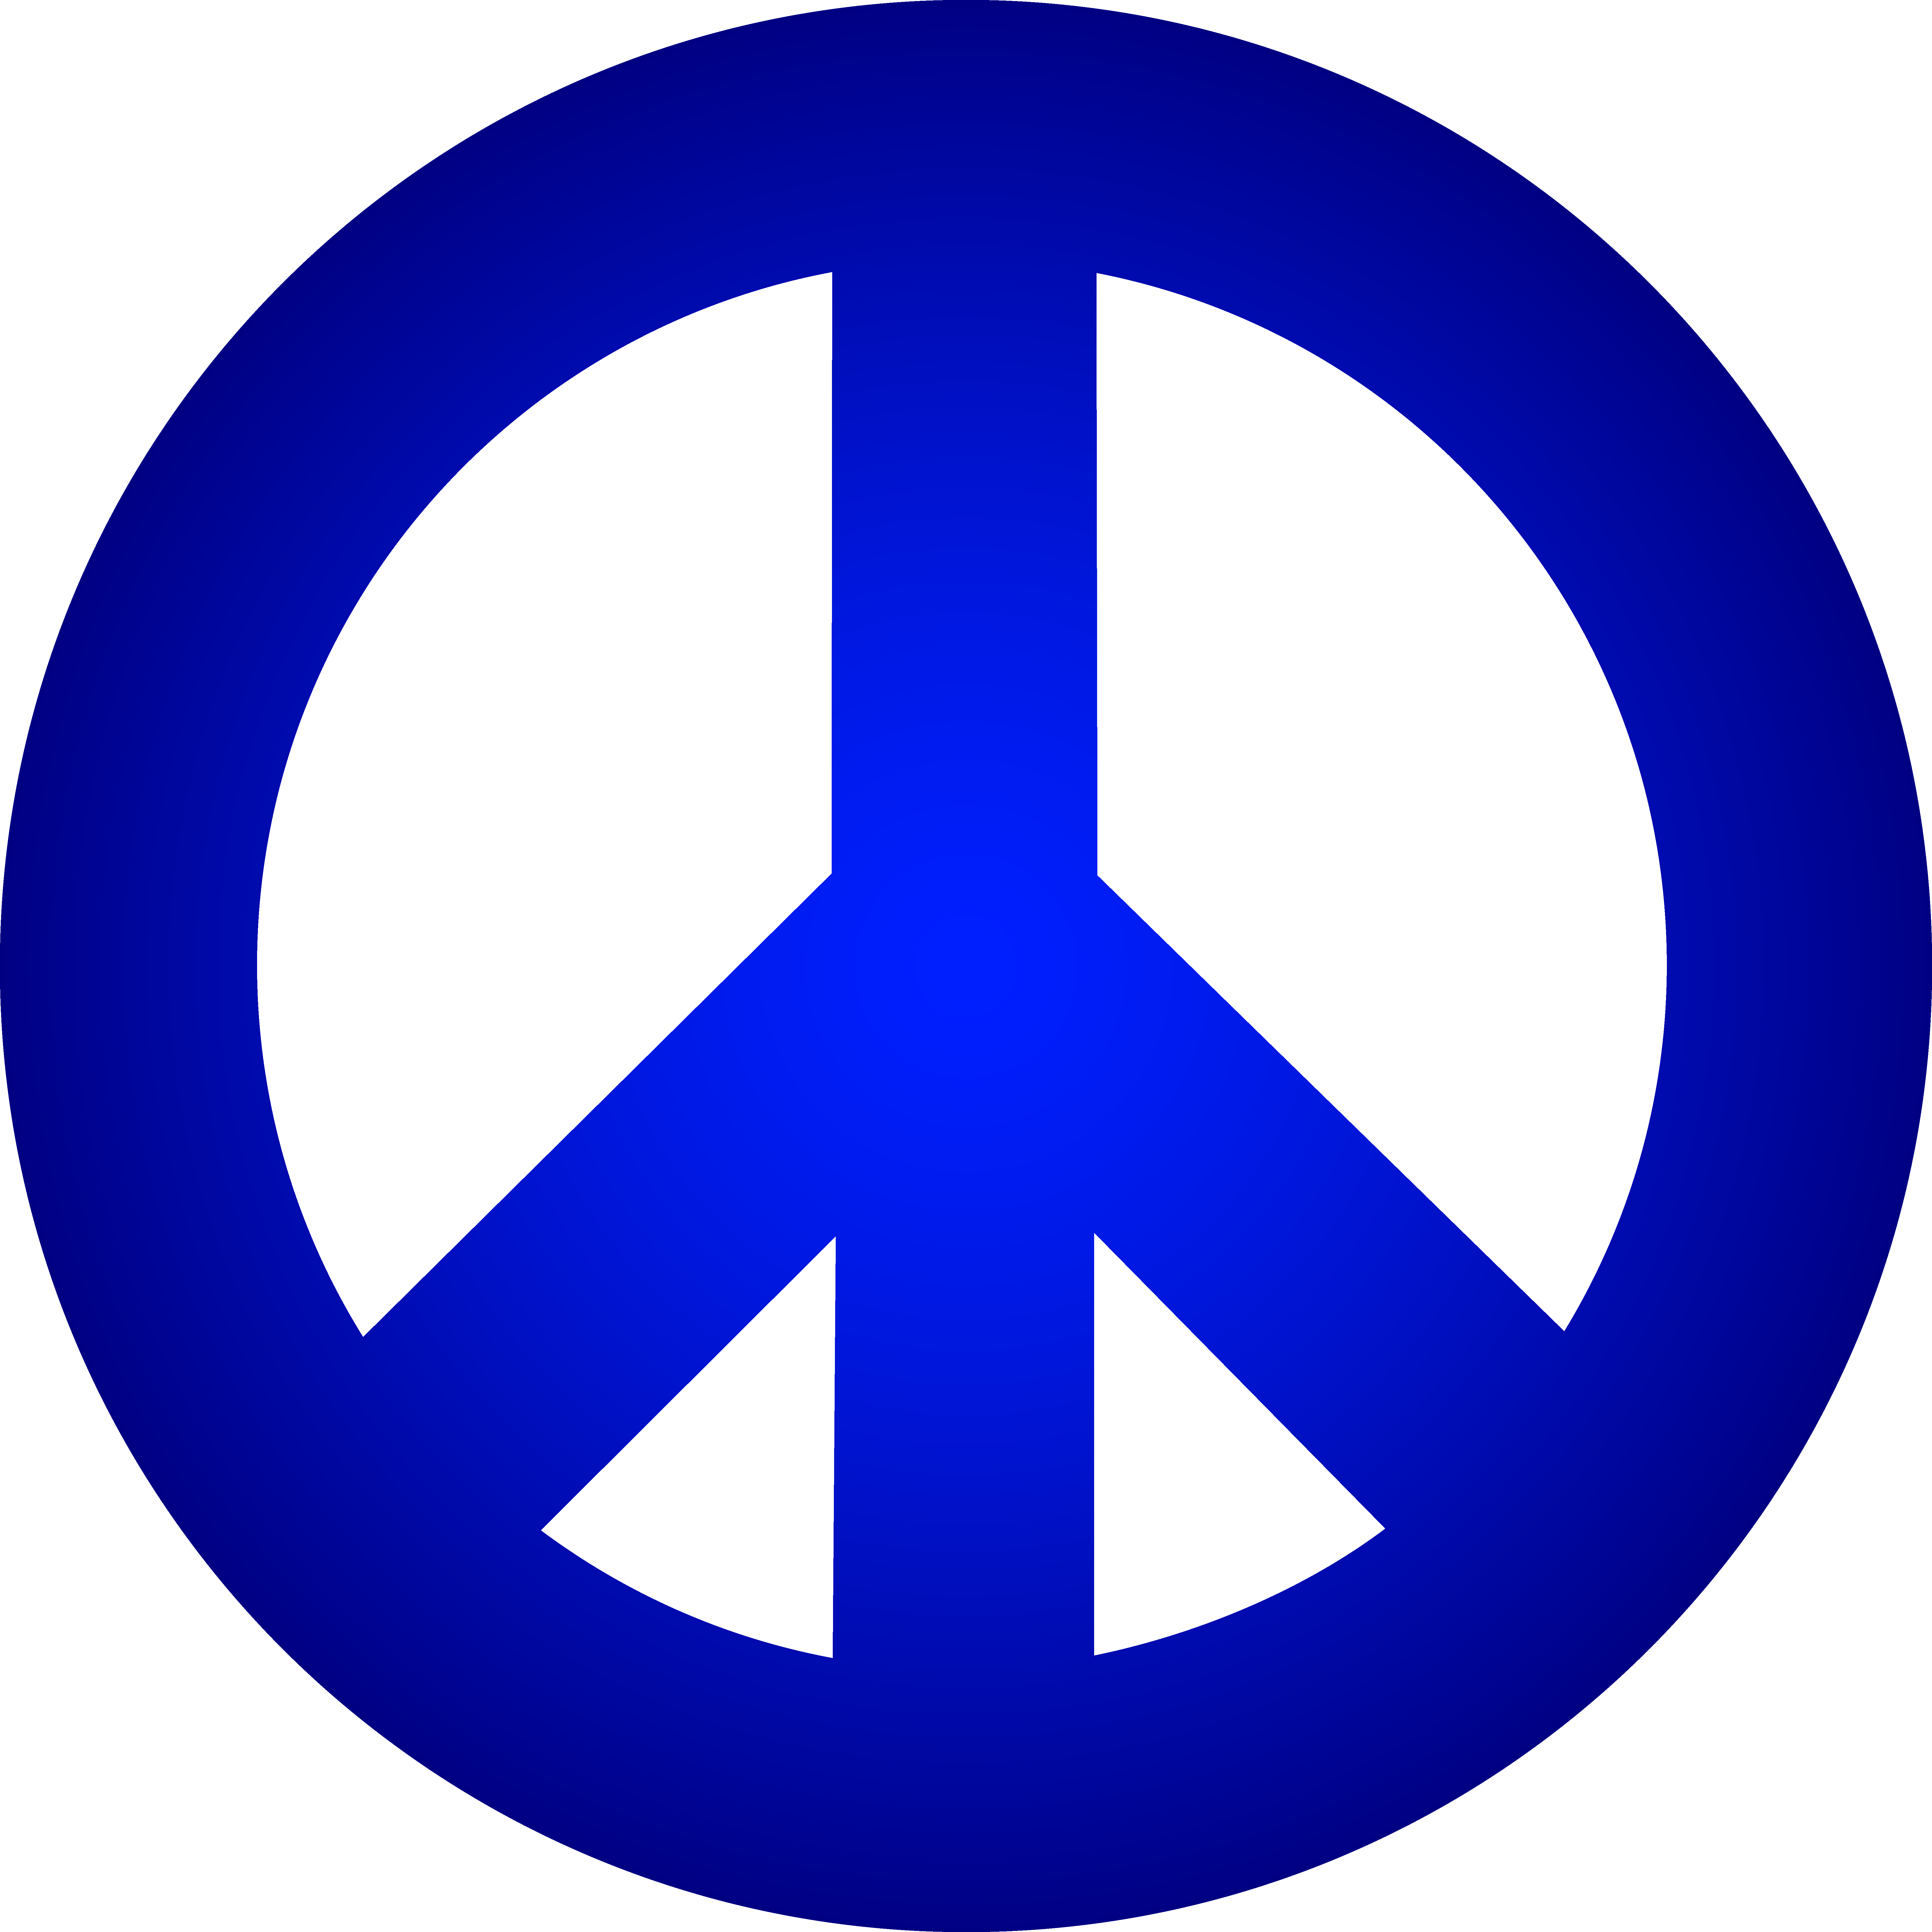 7192x7192 Blue Peace Sign